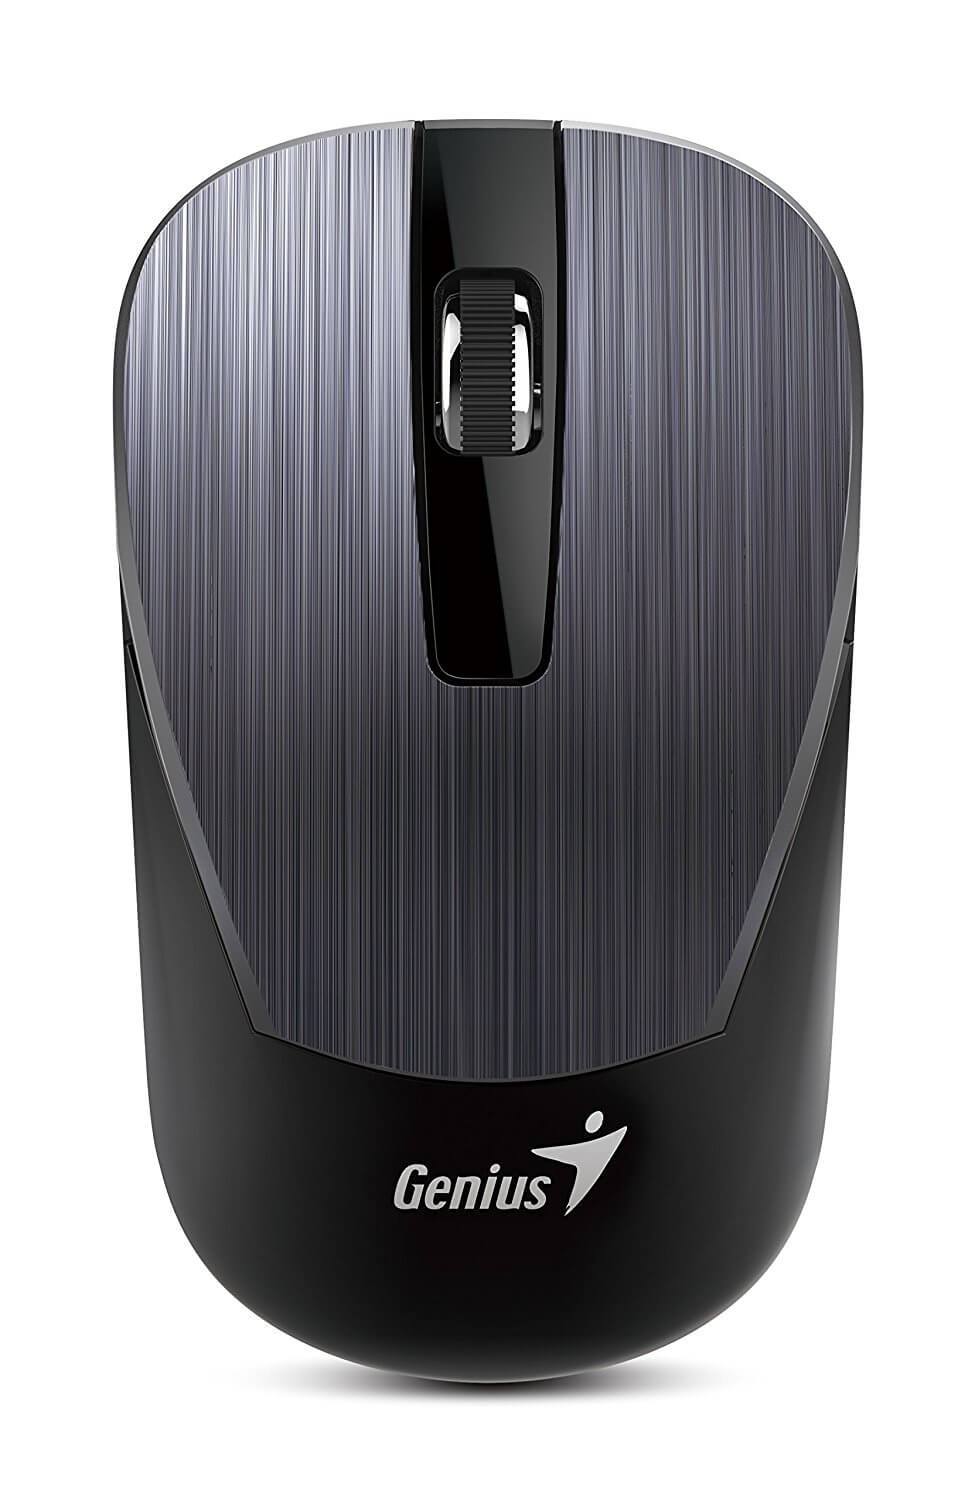 Genius NX-7015 Wireless Mouse